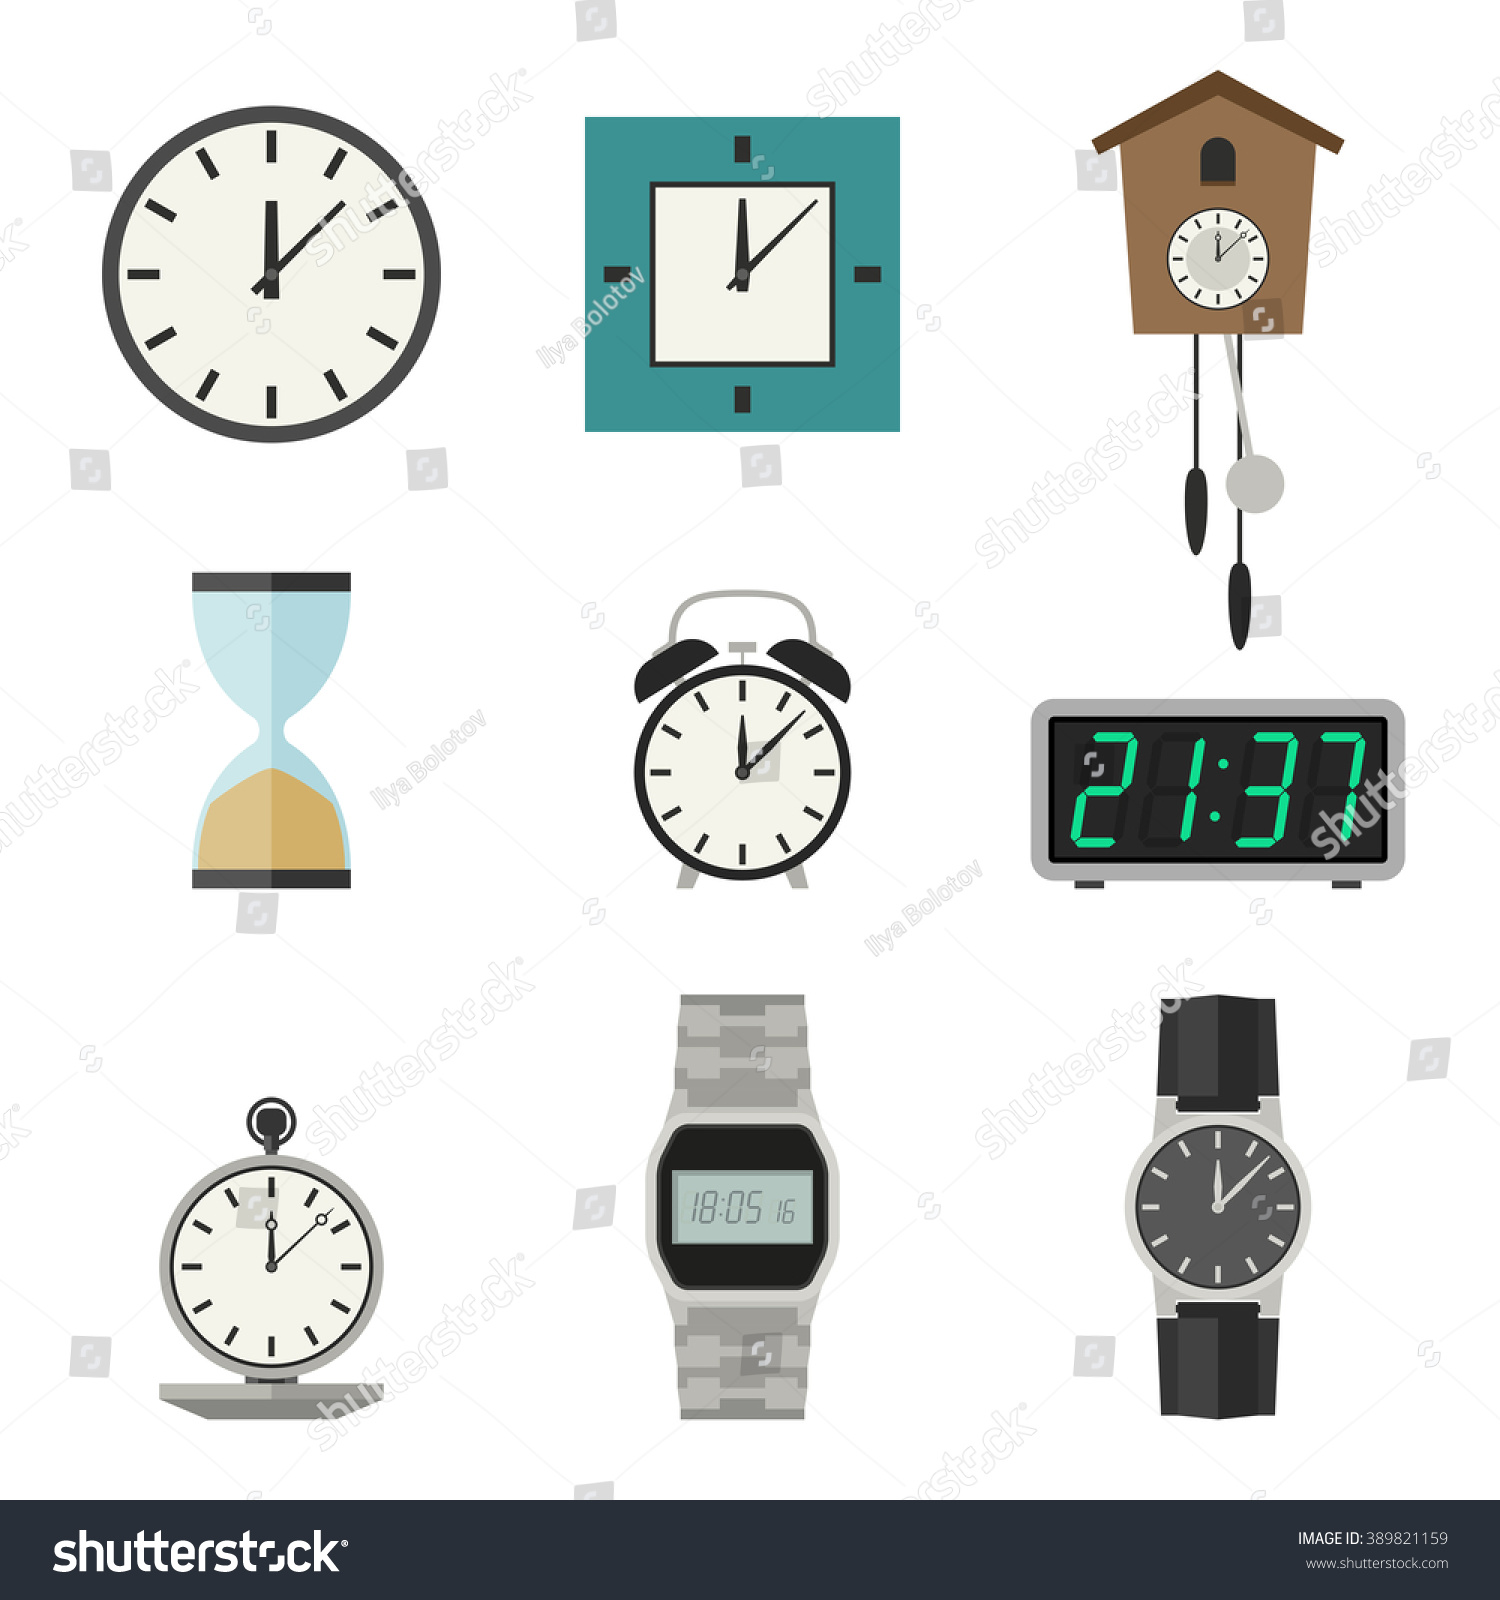 Clock watches vector icons set different stock vector 389821159 clock and watches vector icons set different types of clocks and watches amipublicfo Choice Image